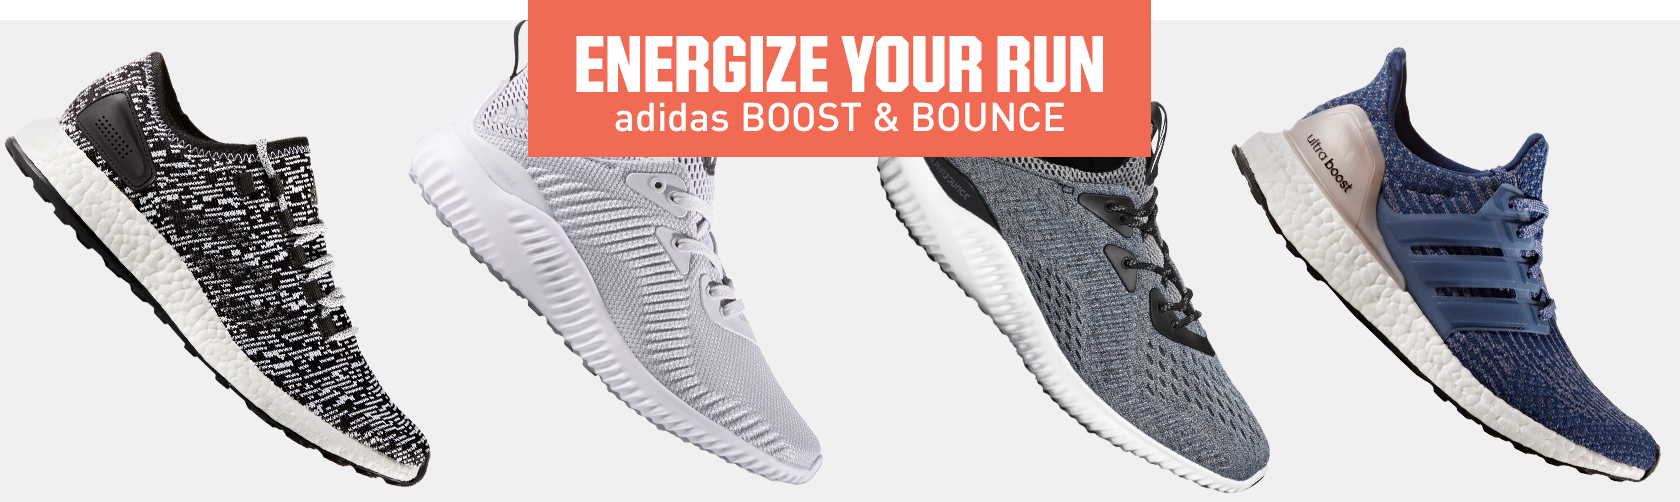 Shop adidas Boost Bounce Footwear